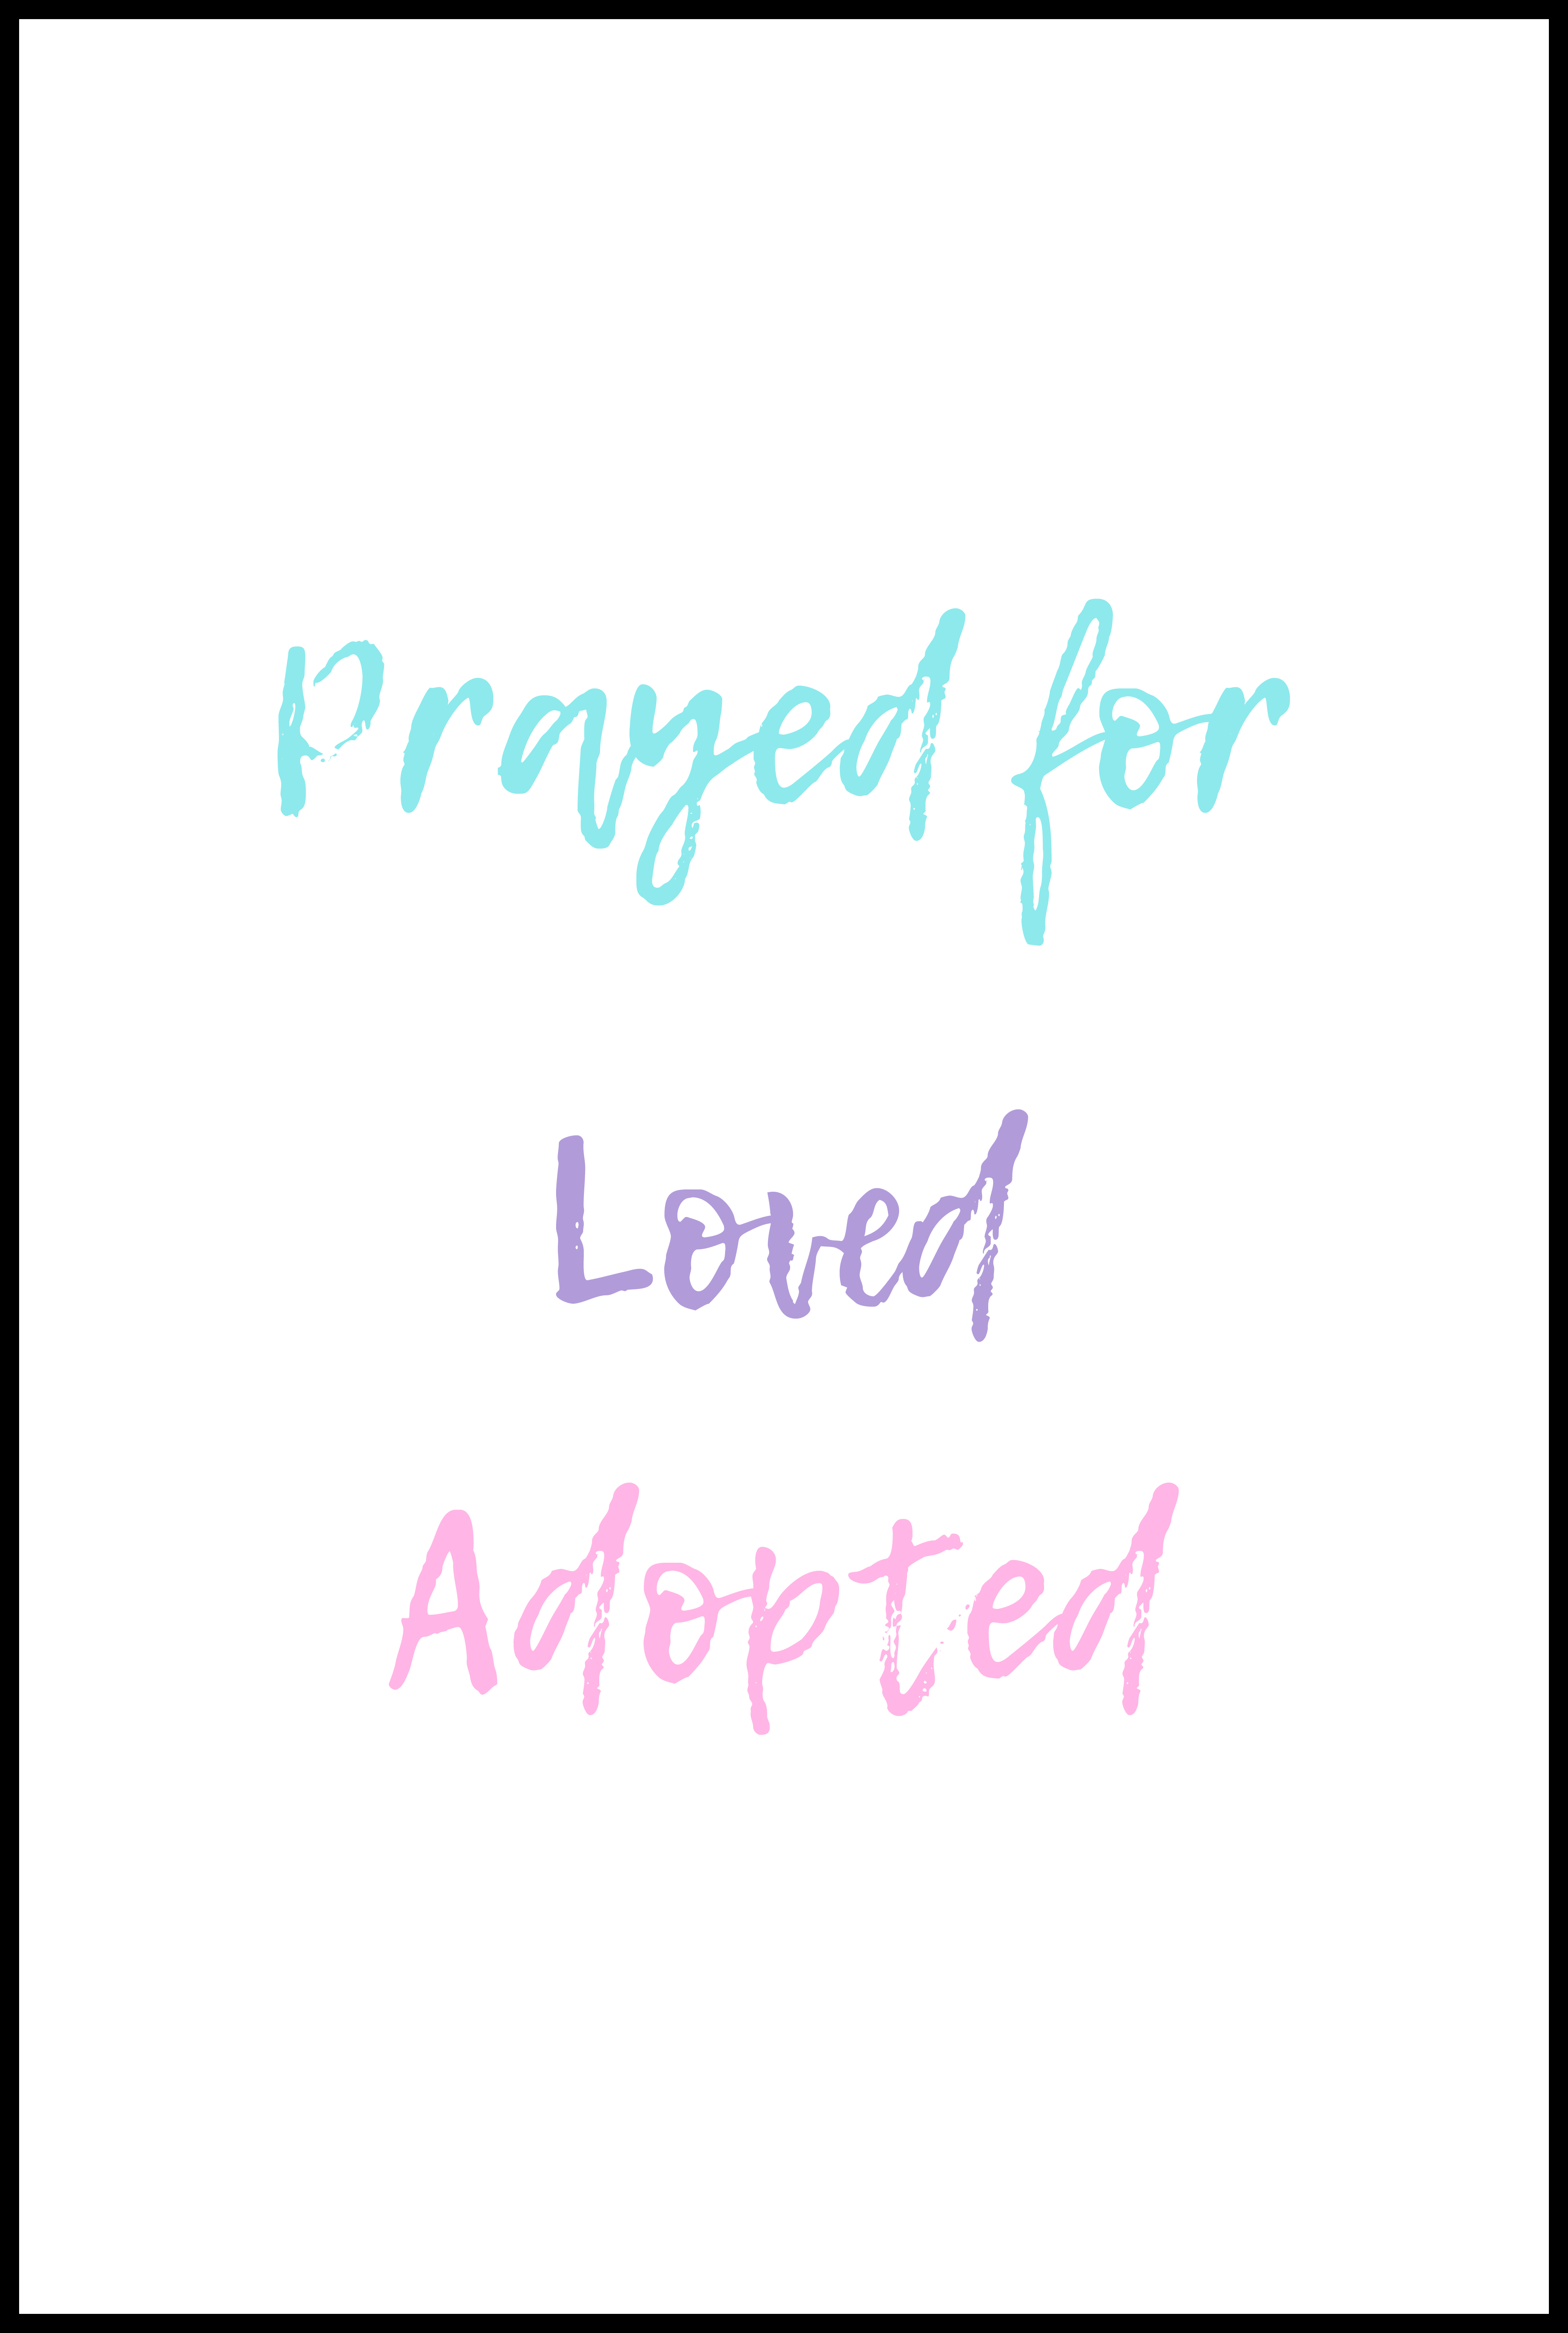 Prayed for Loved Adopted